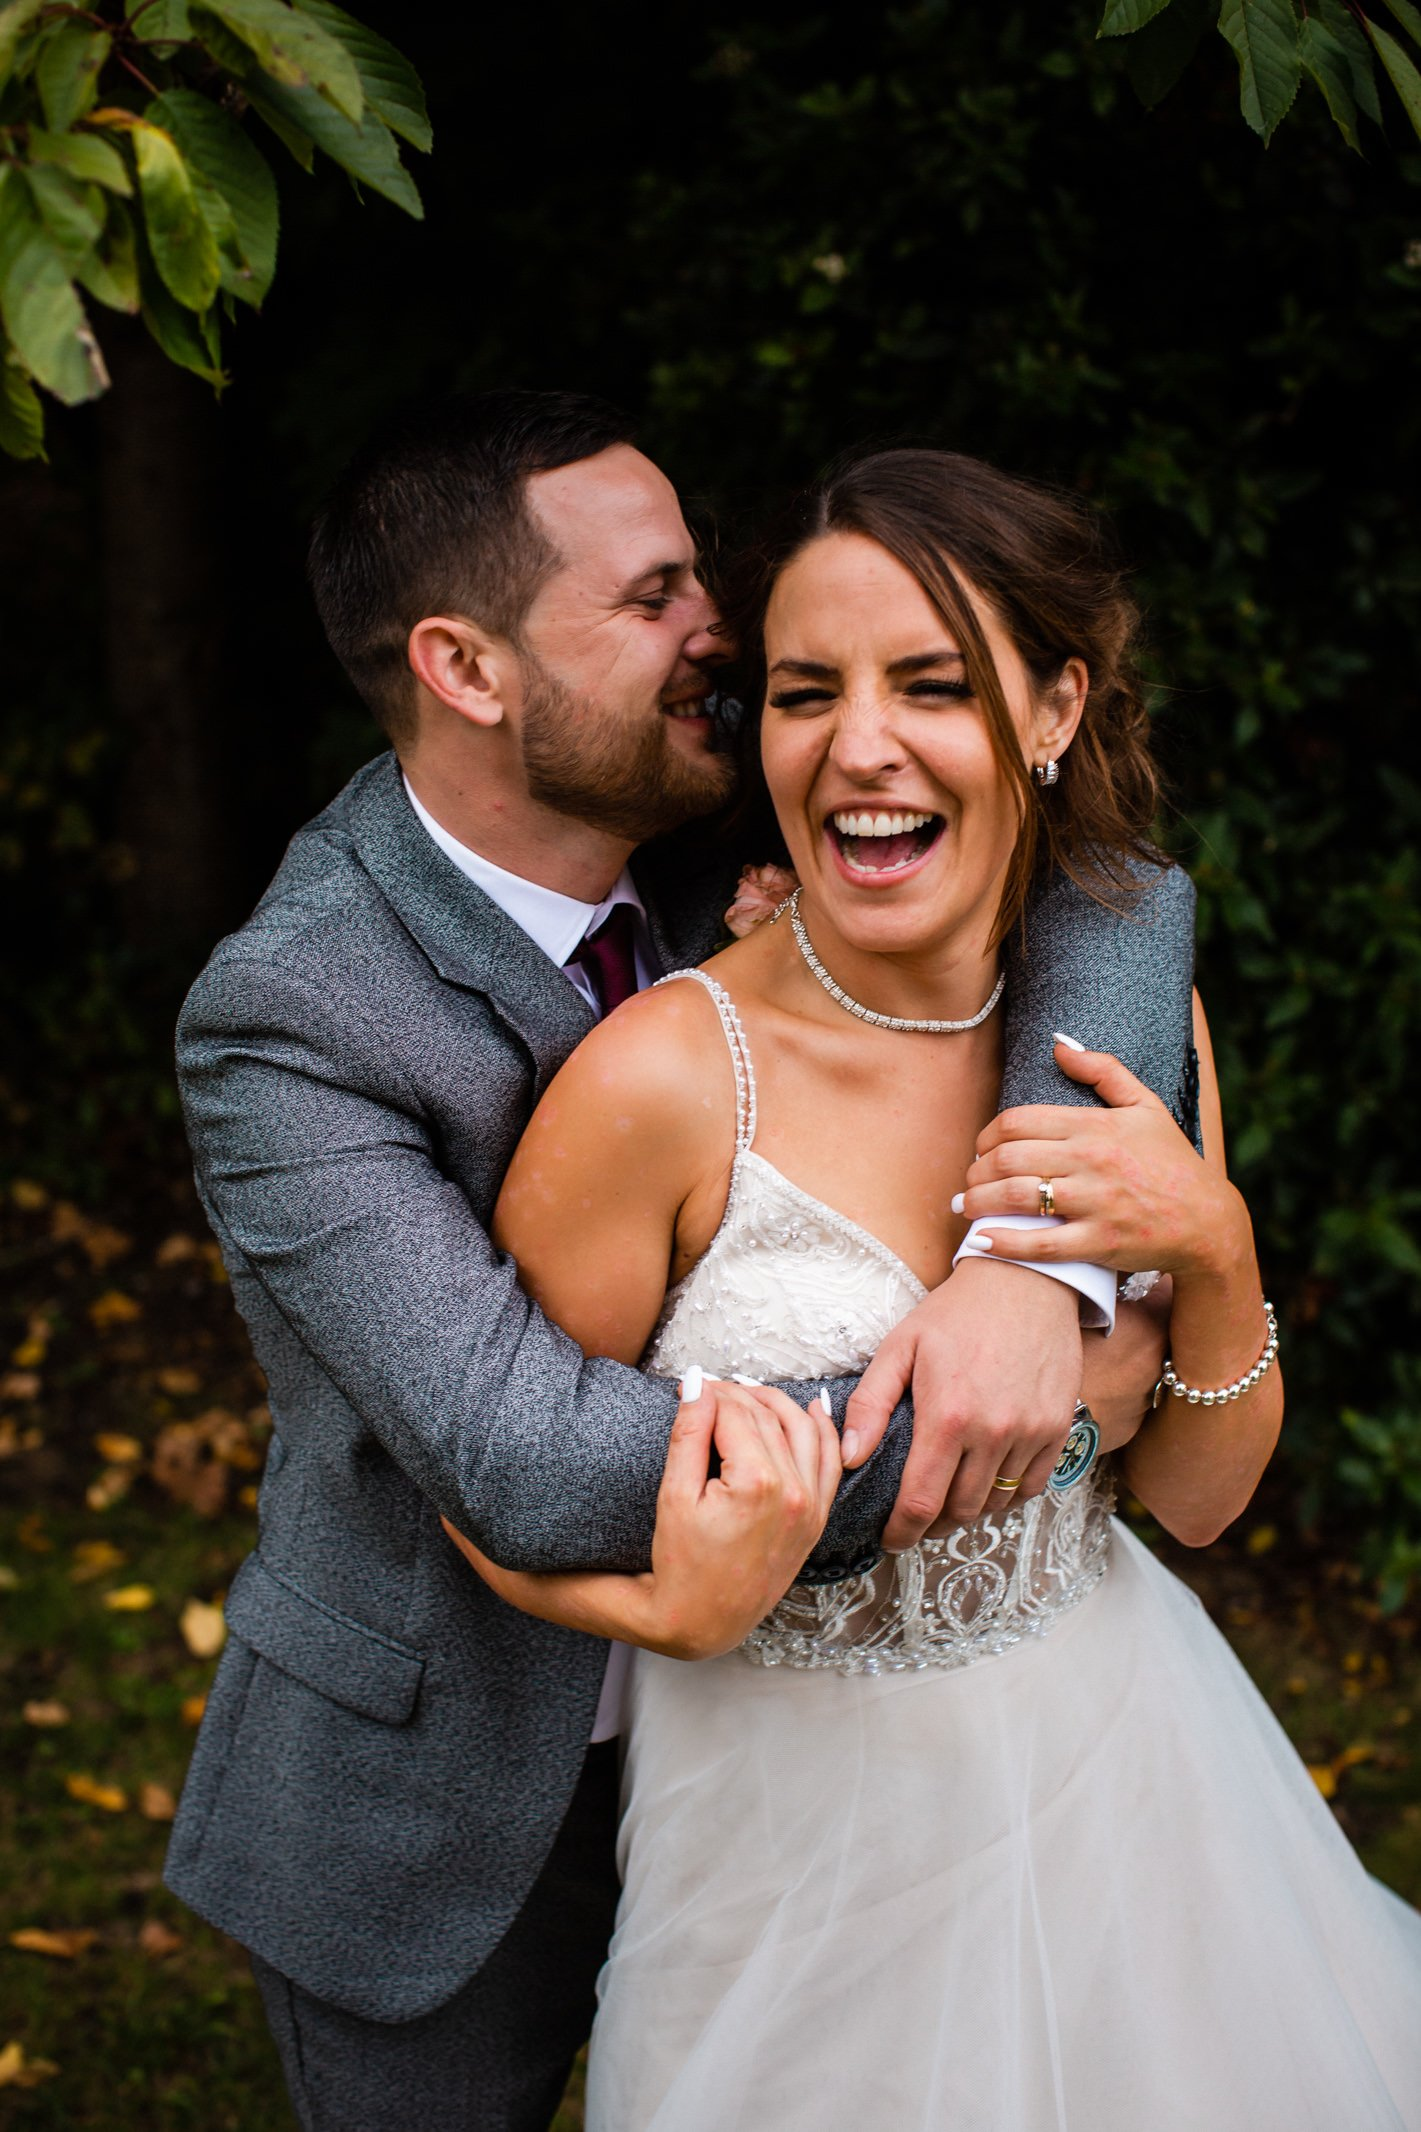 The Elephant Pangbourne Wedding - Stunning Kayleigh & Shane 58